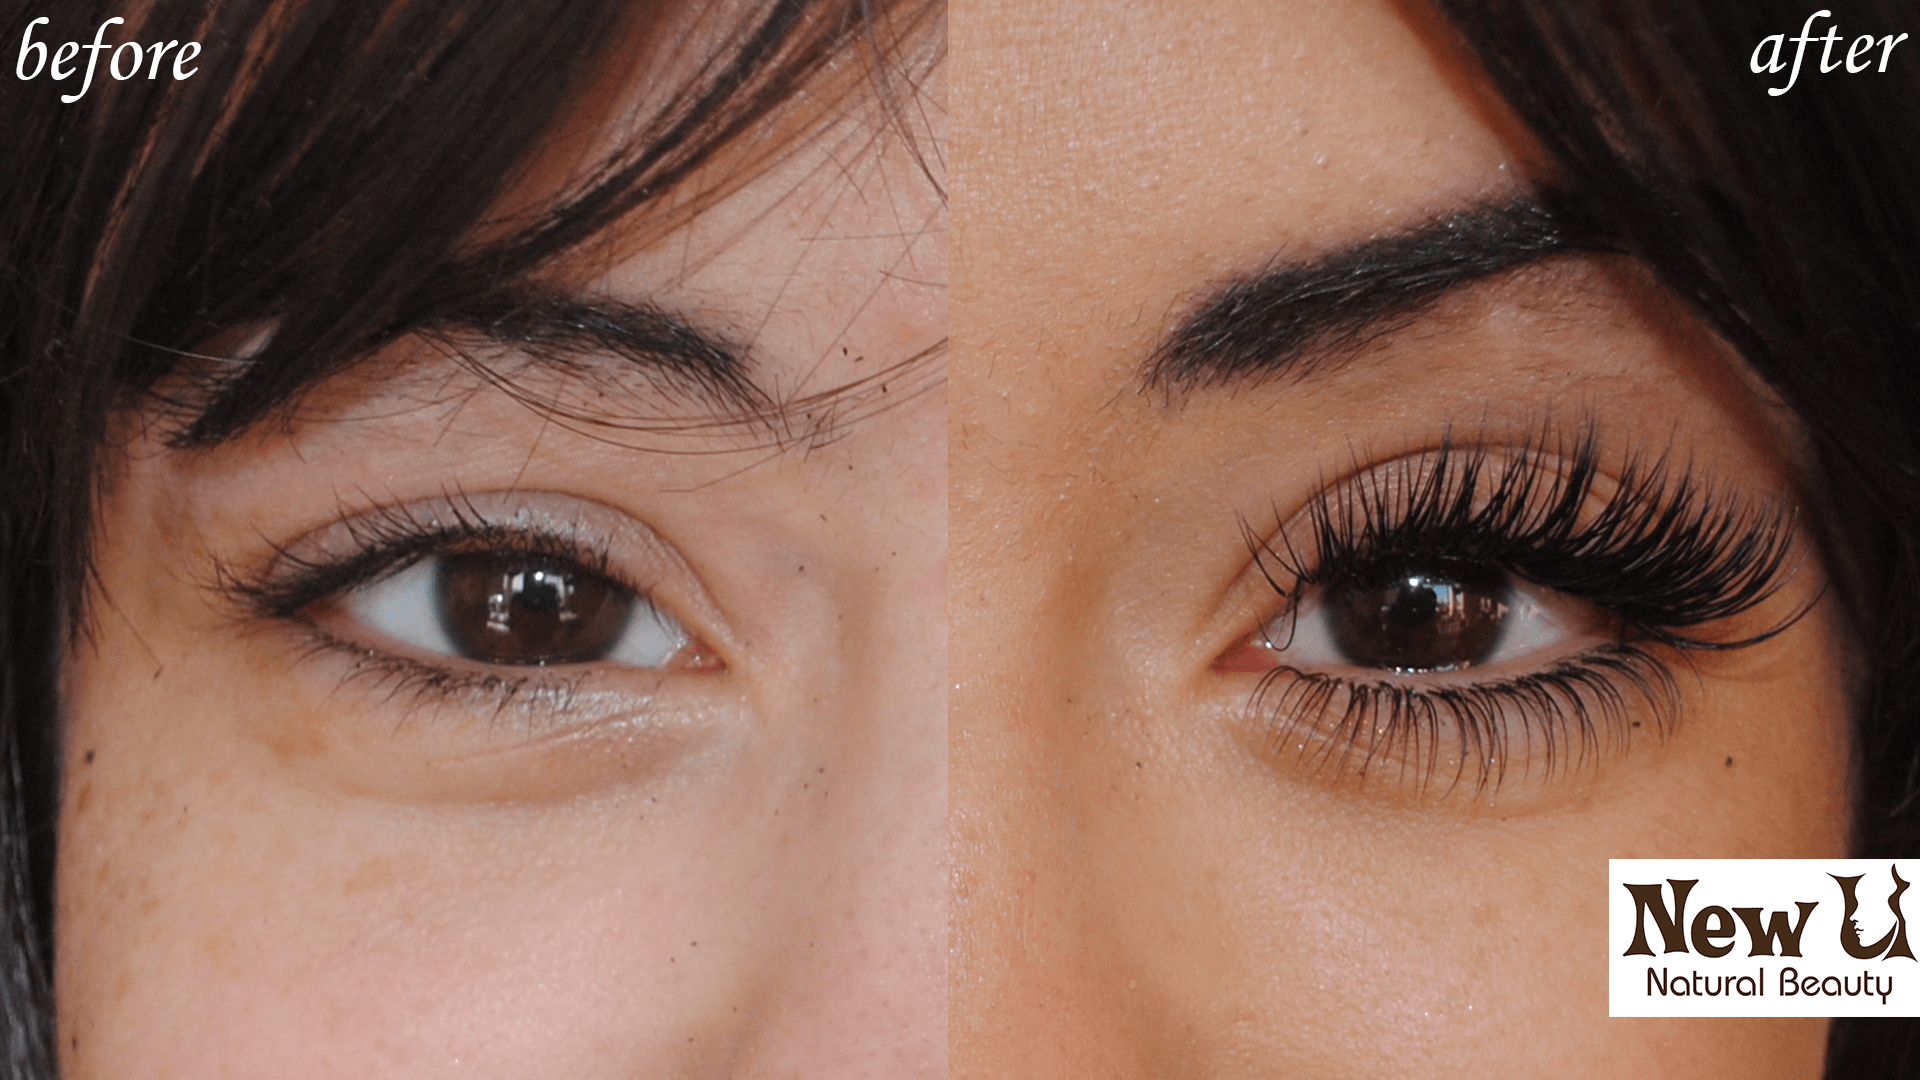 Eyelash Extensions 3D 3 Las Vegas Before and After